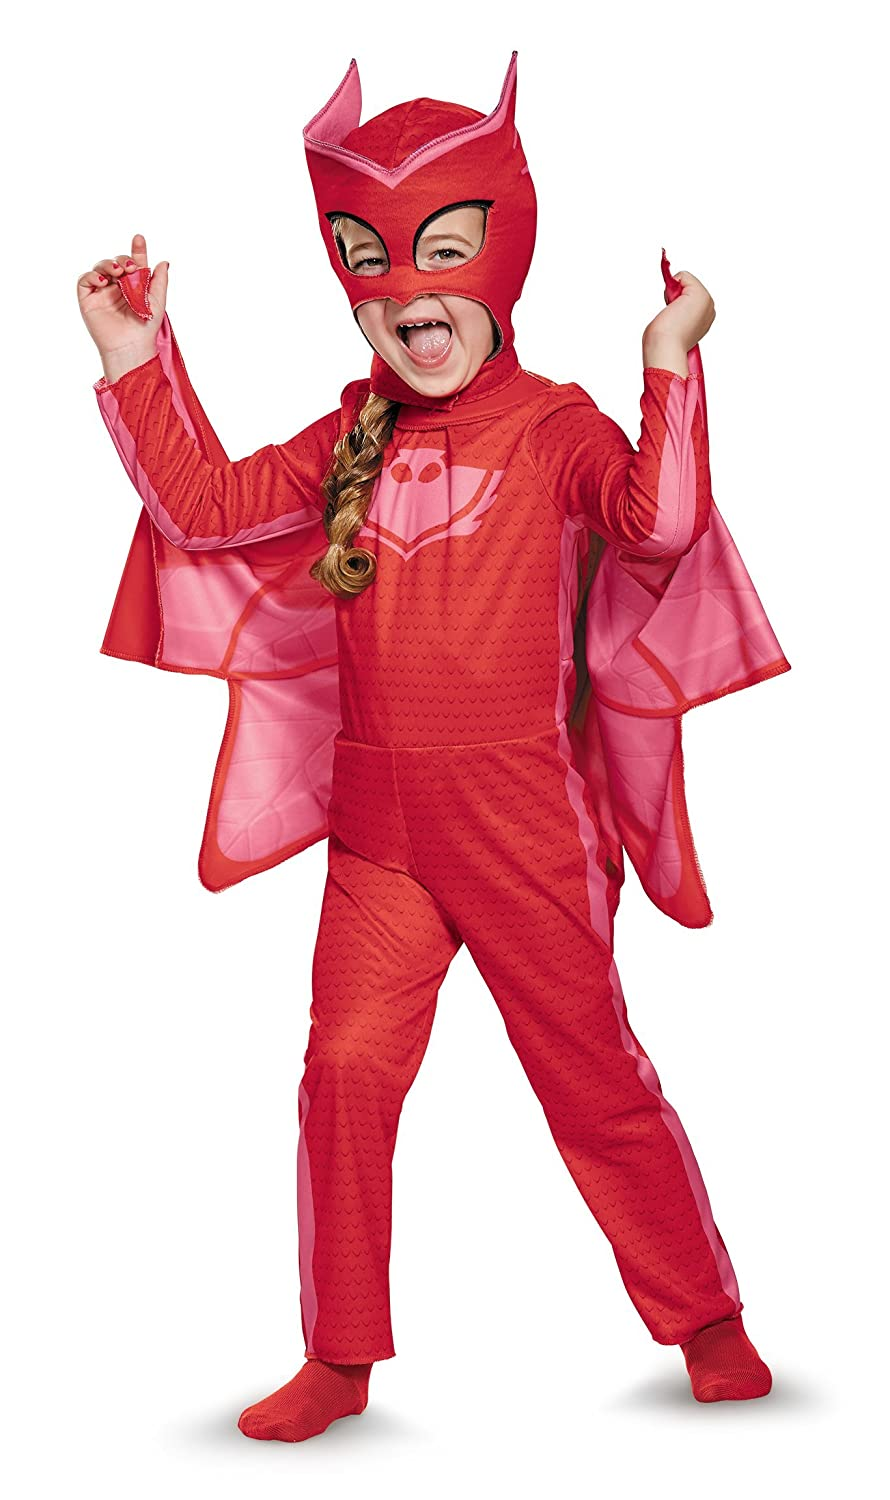 Owlette Classic Toddler PJ Masks Costume, Large/4-6X 17156L